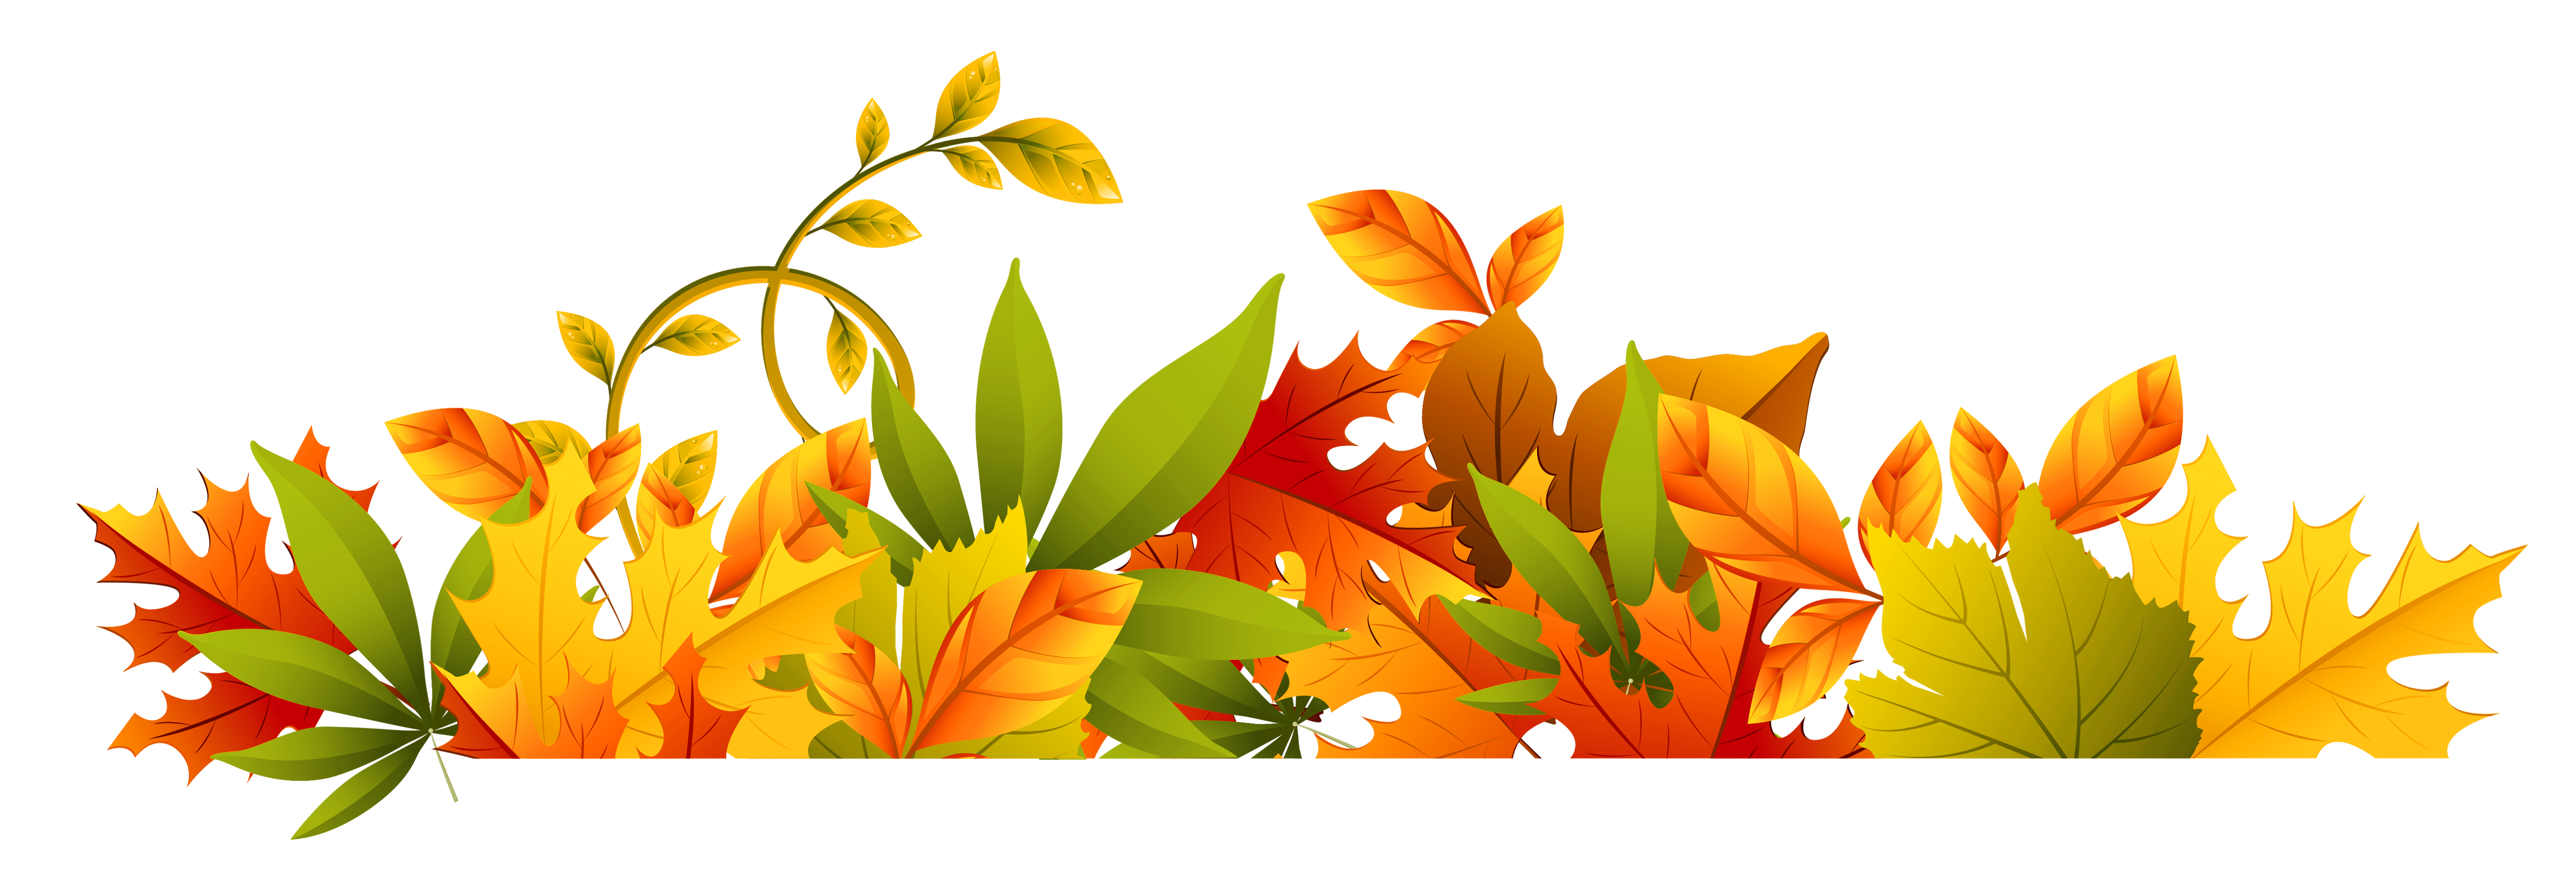 Pumpkin clipart border template graphic free library Transparent Autumn Border PNG Clipart | Gallery Yopriceville - High ... graphic free library